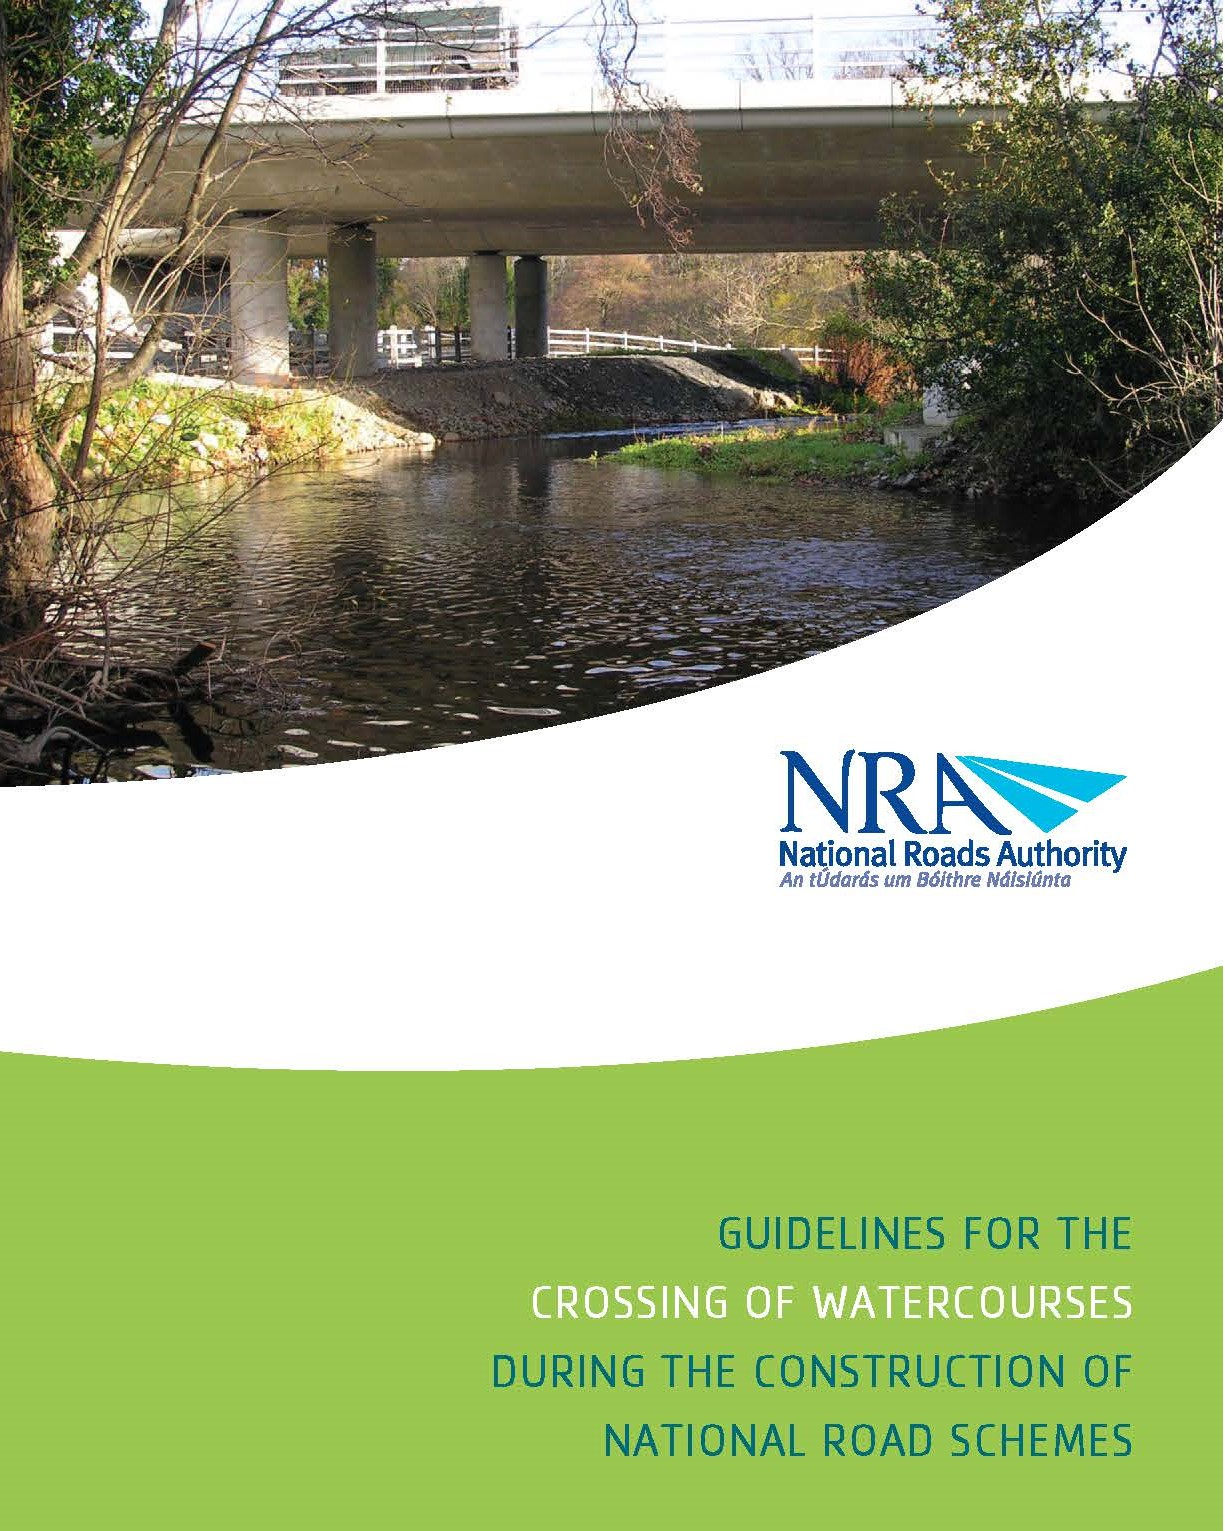 Guidelines for the Crossing of Watercourses during the construction of National Road Schemes. National Roads Authority (NRA)